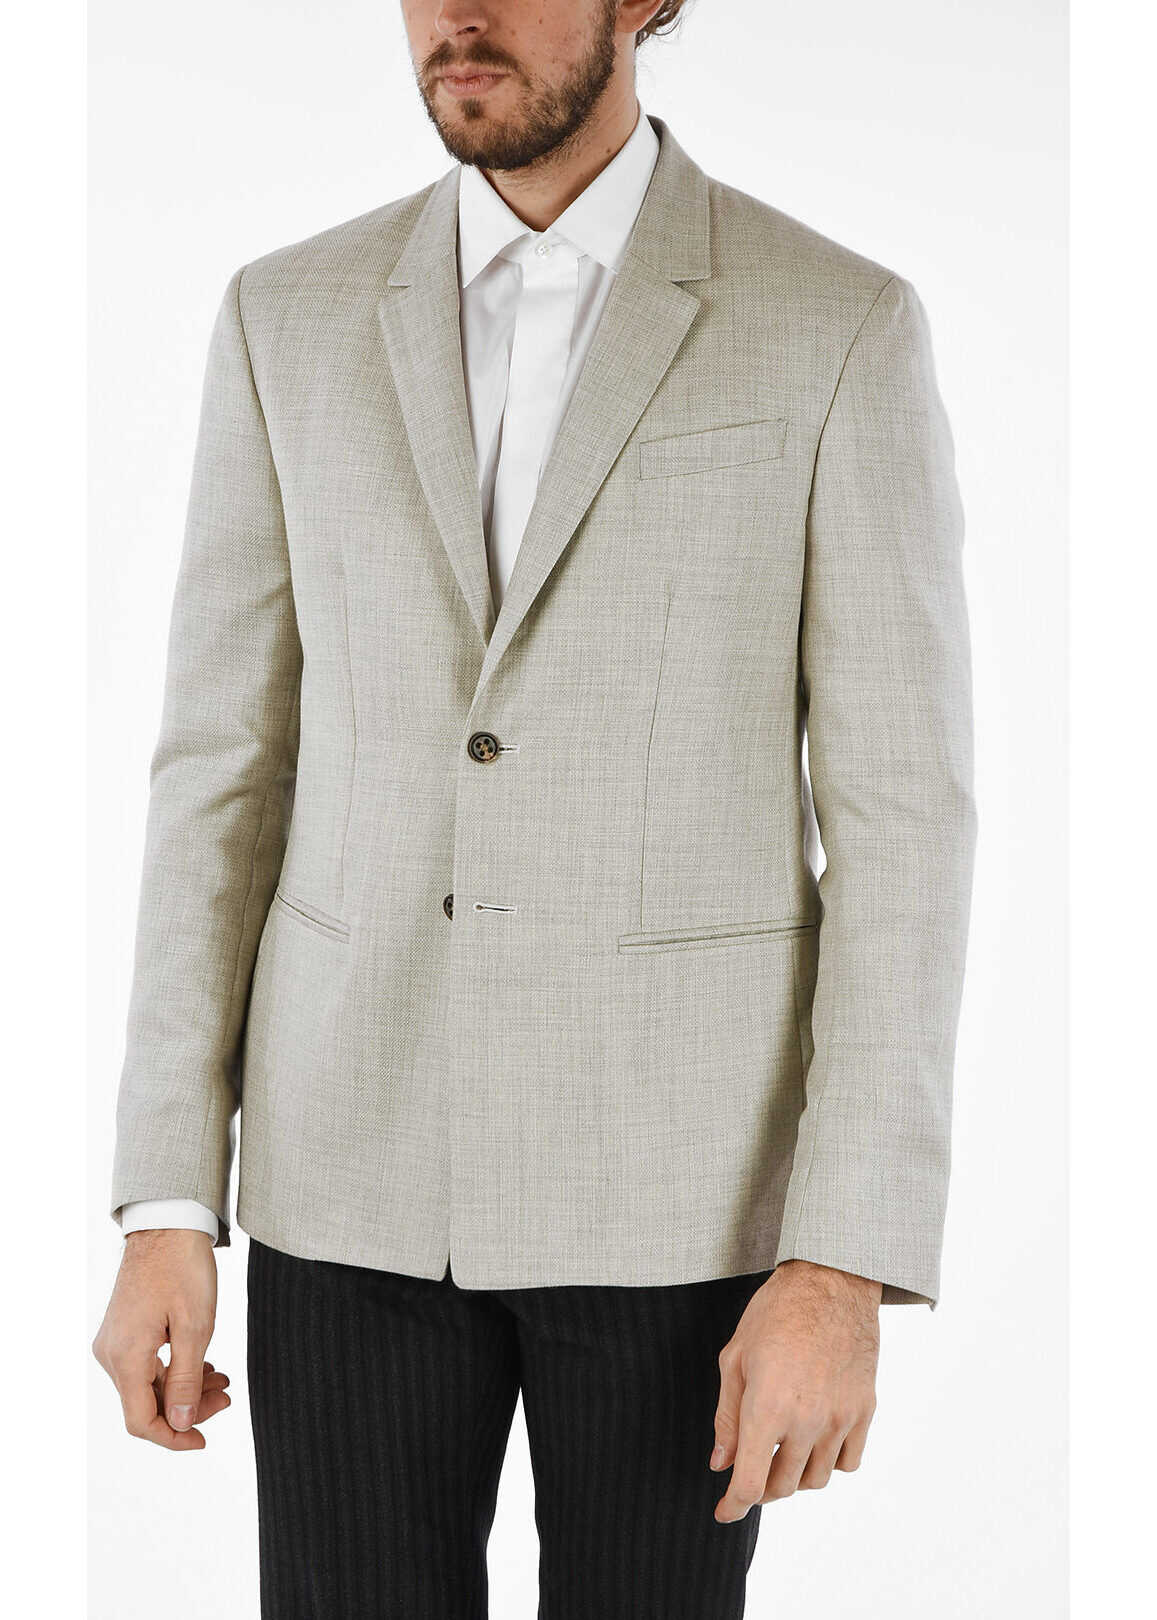 center vent notch lapel 2-button blazer thumbnail